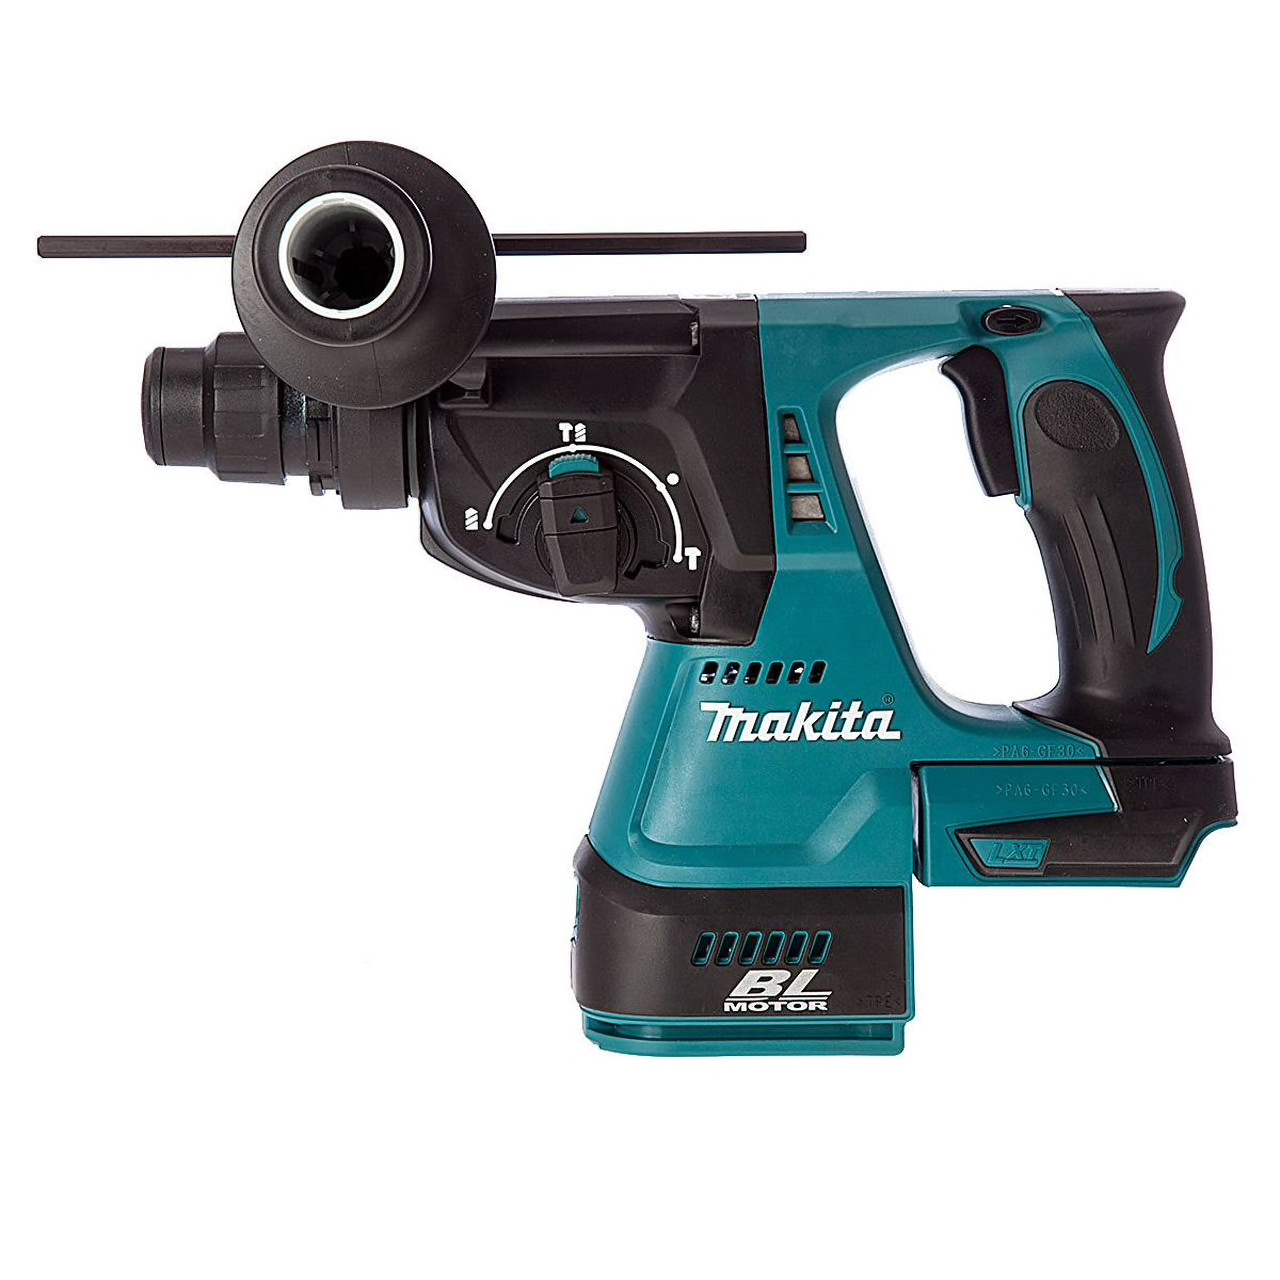 Makita SDS+ Drills